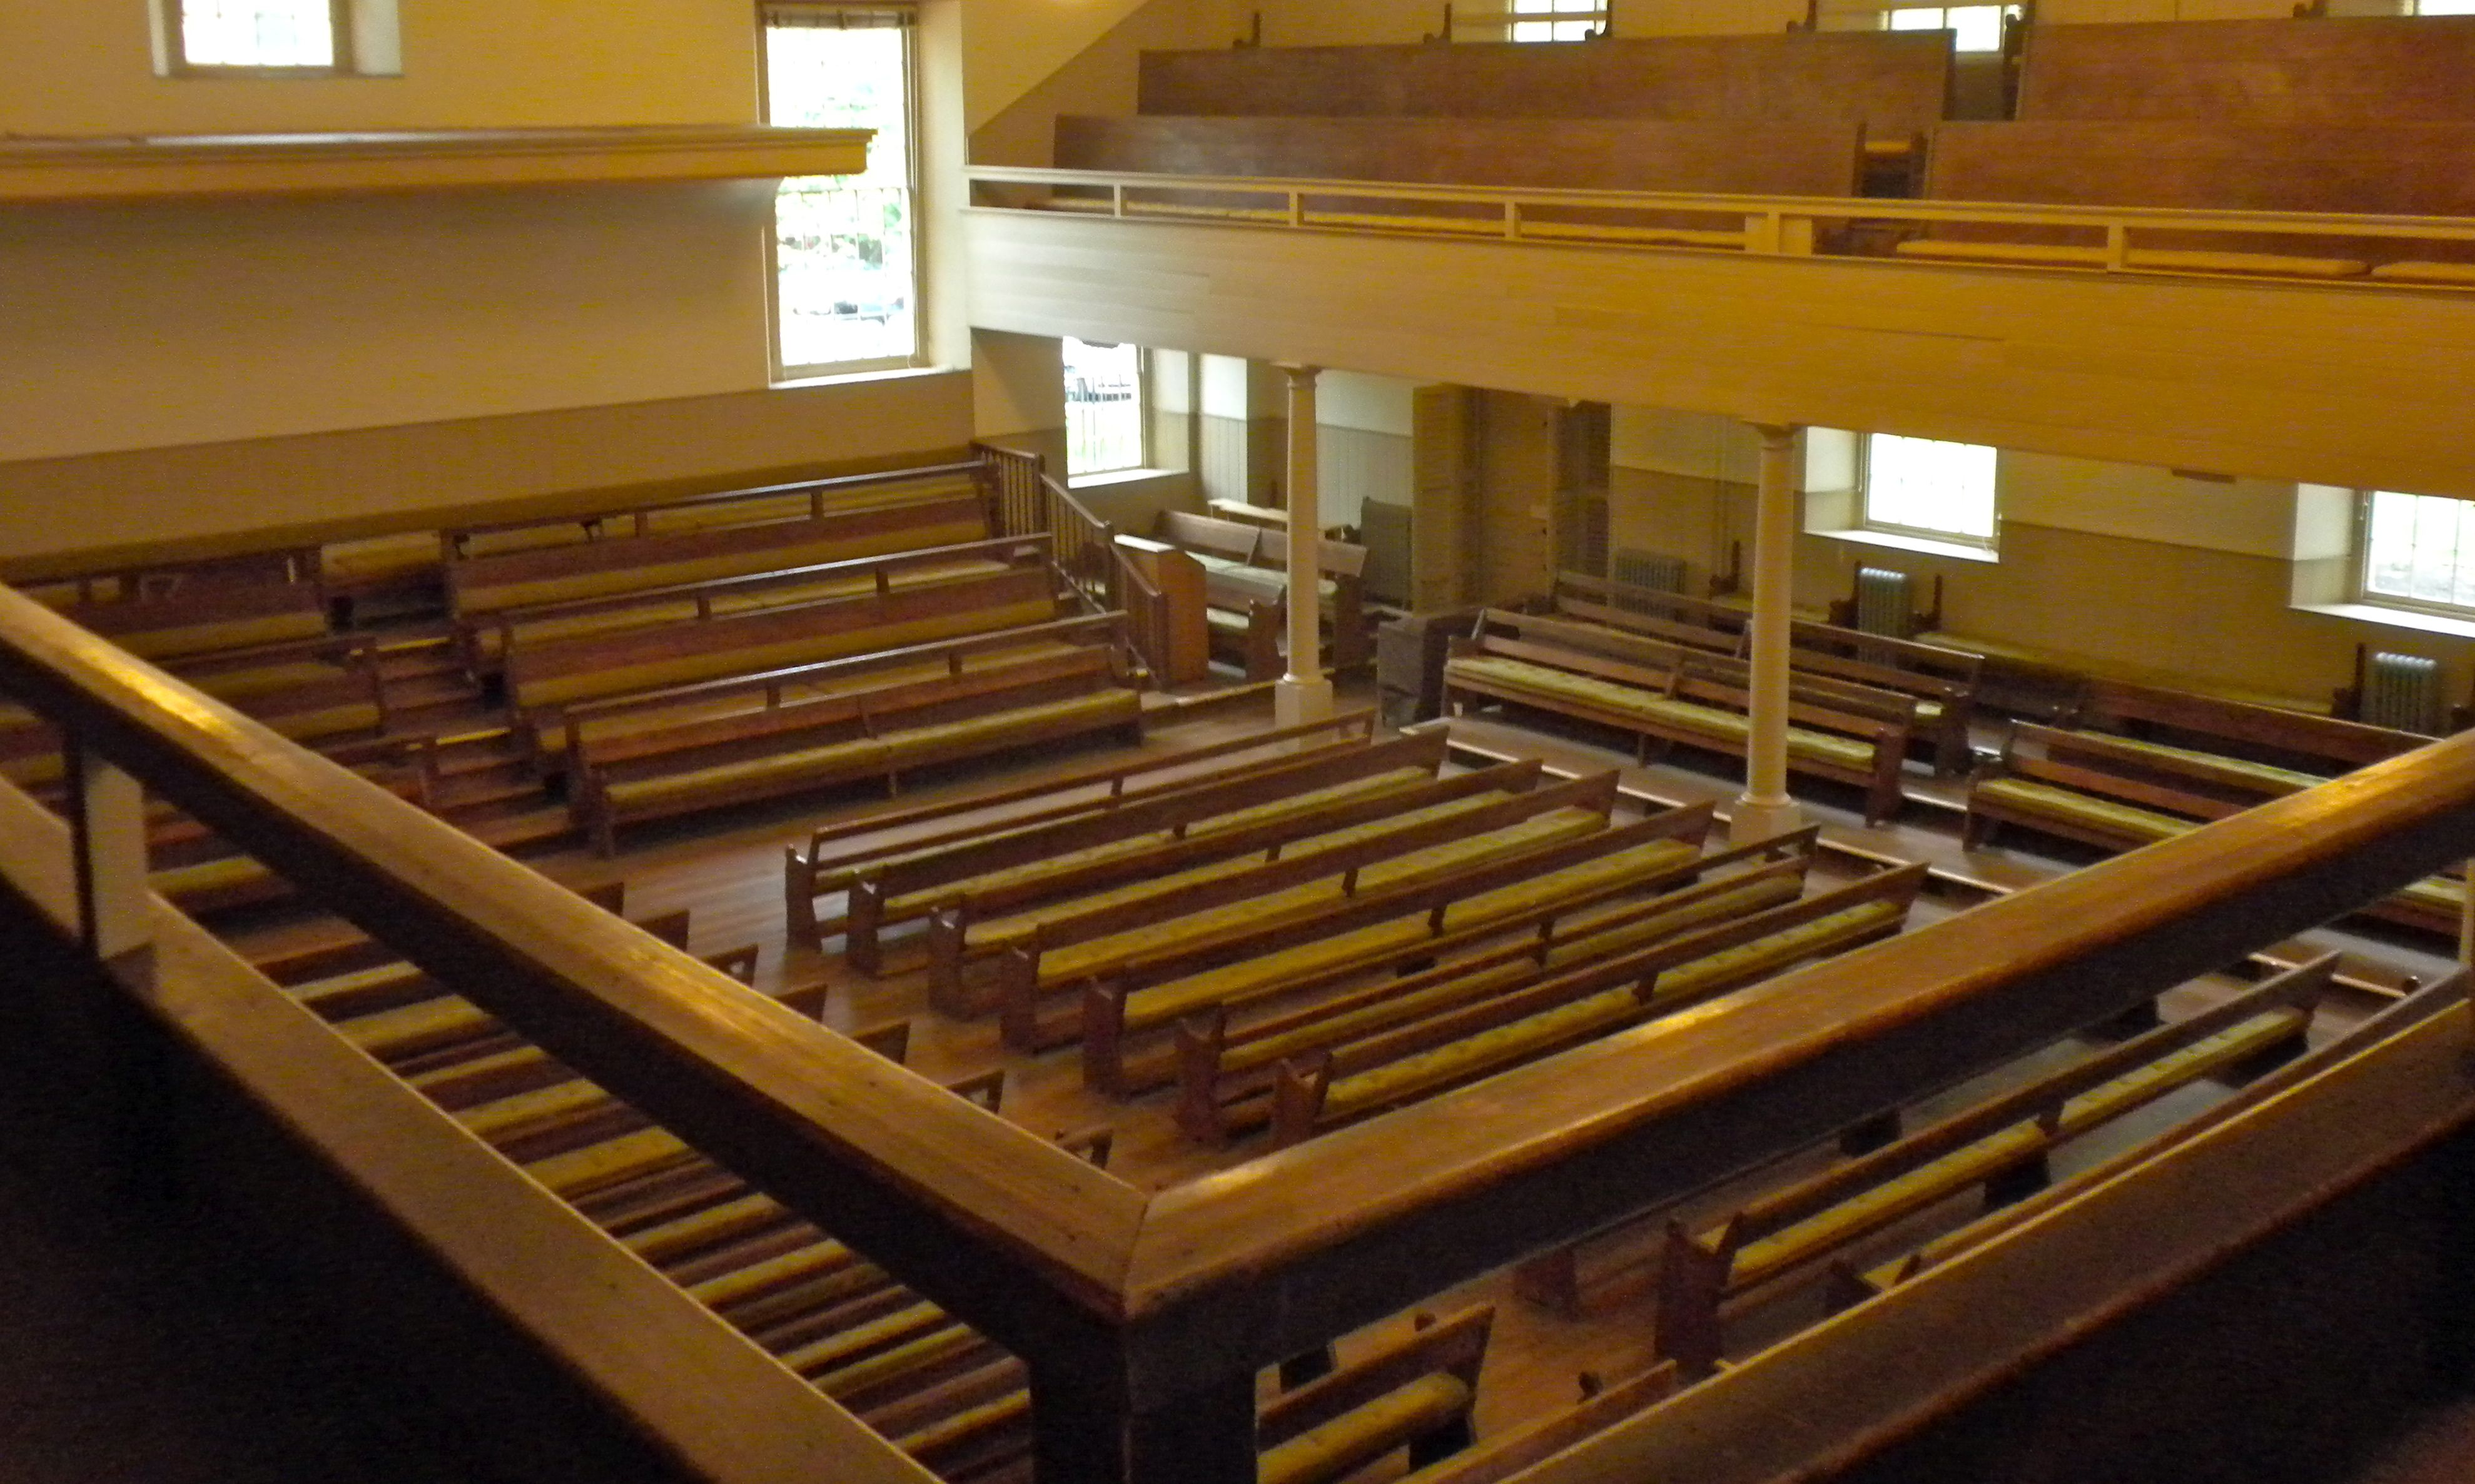 Interior of the Arch Street Friends Meeting House in